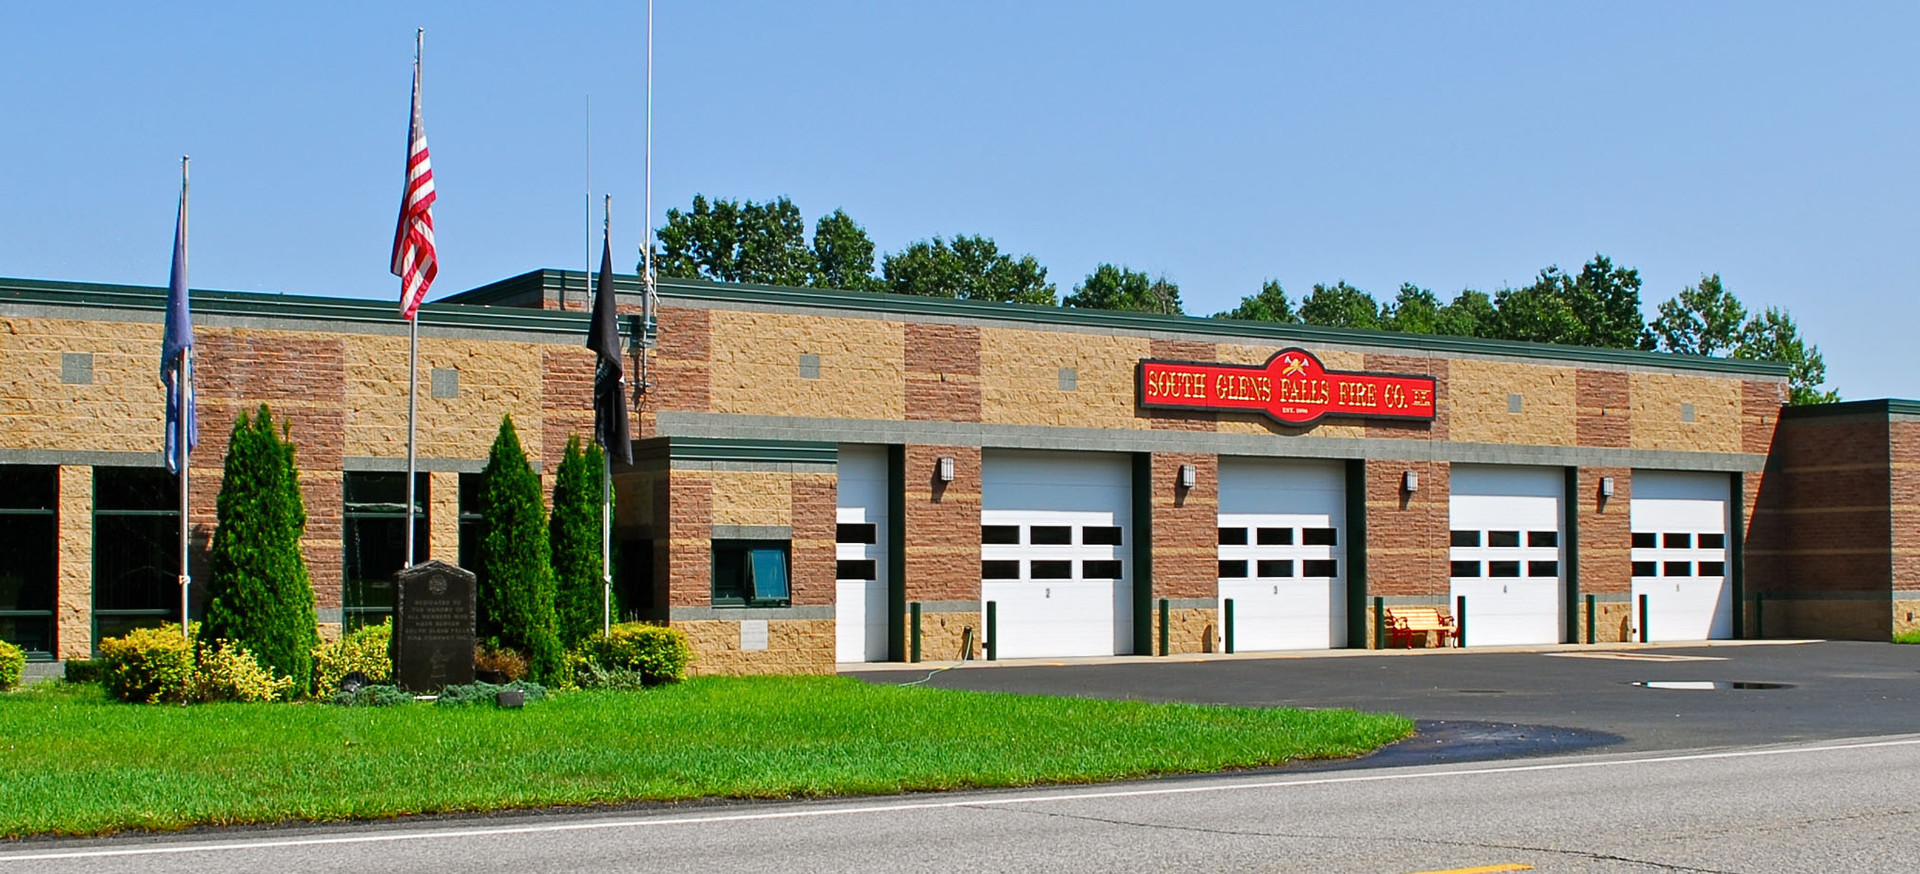 South Glens Falls Fire Company